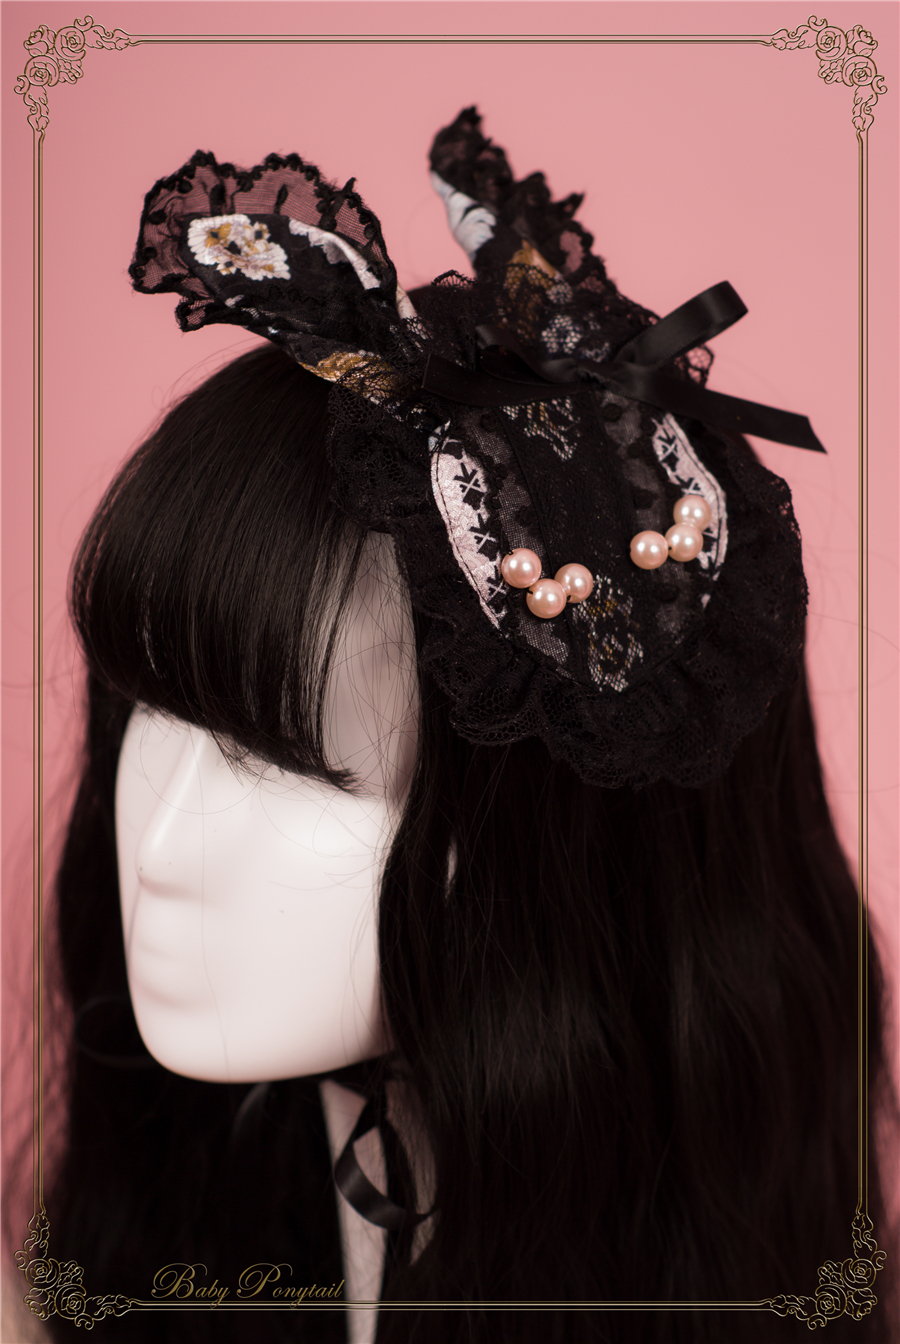 BabyPonytail_Stock Photo_My Favorite Companion_Bunny Head Dress_8.jpg